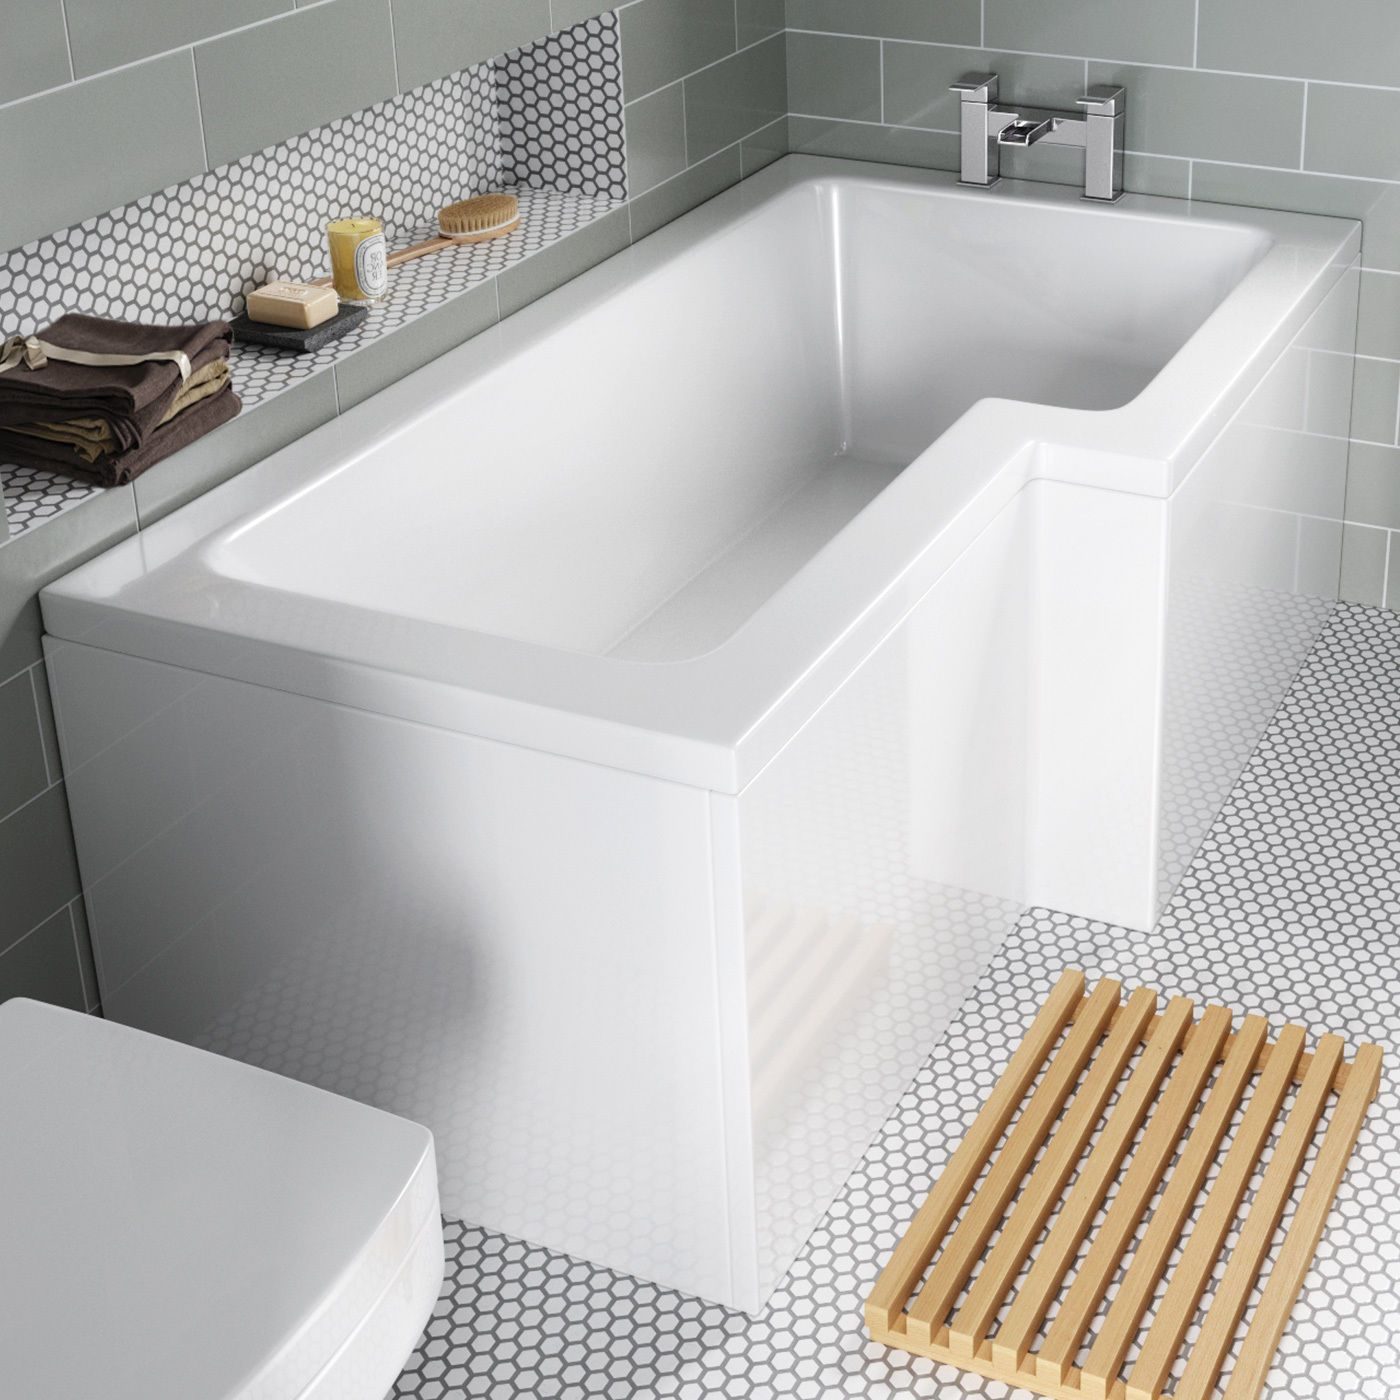 L Shaped Shower Bath 1700.L Shaped Shower Bath Tub Bathroom Right ...